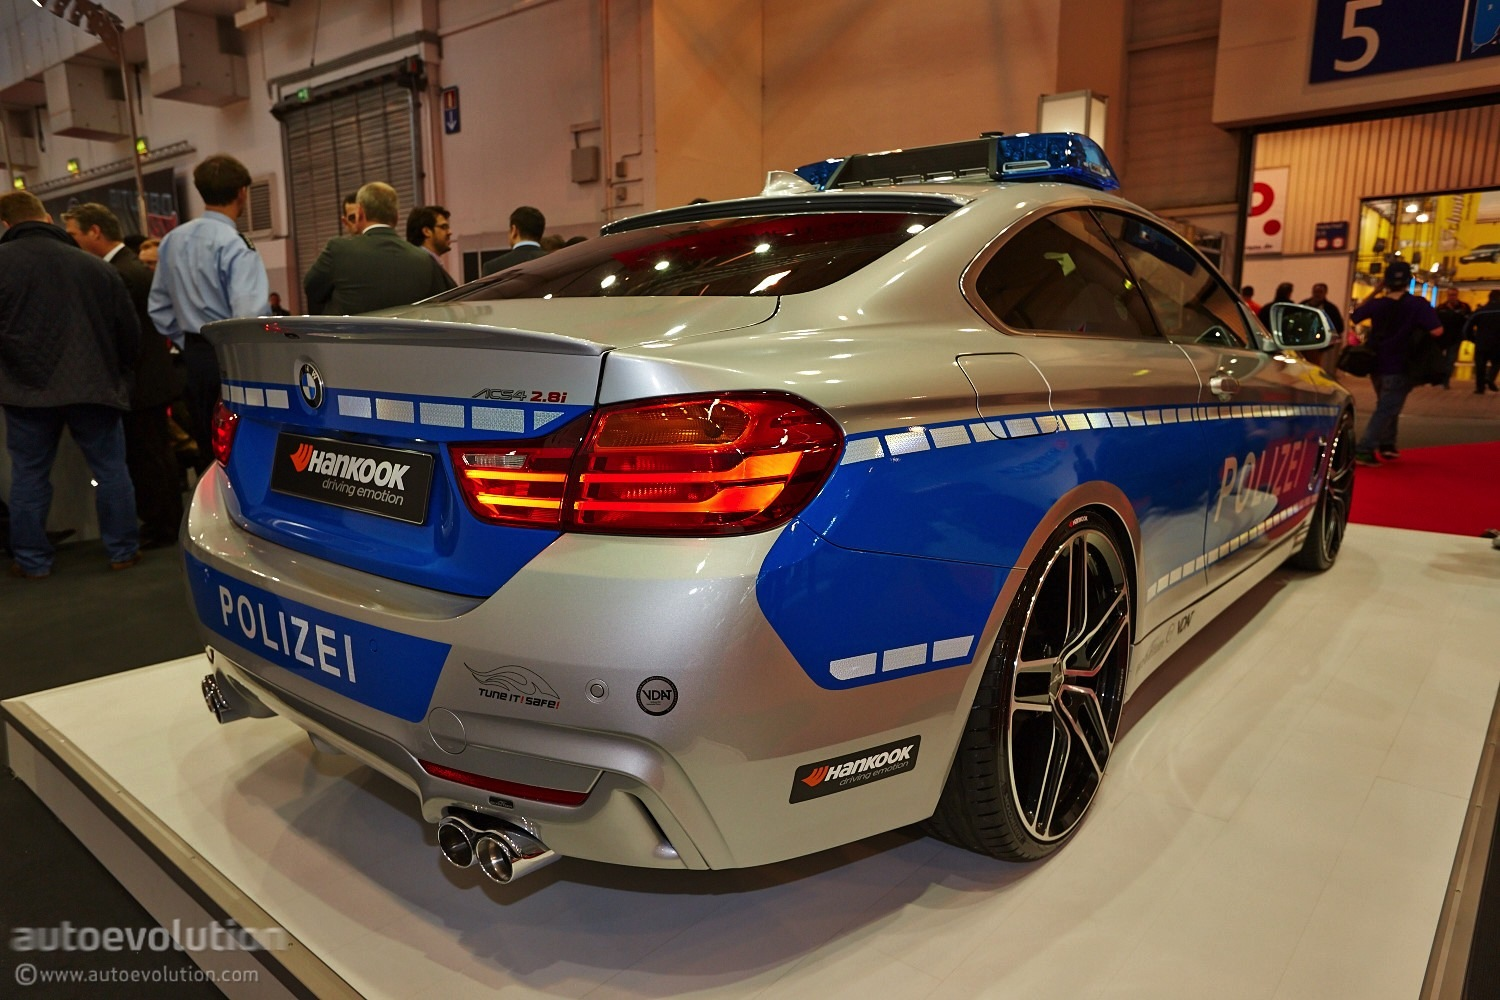 ac schnitzer police car has 294 hp at essen motor show 2013 live photos autoevolution. Black Bedroom Furniture Sets. Home Design Ideas